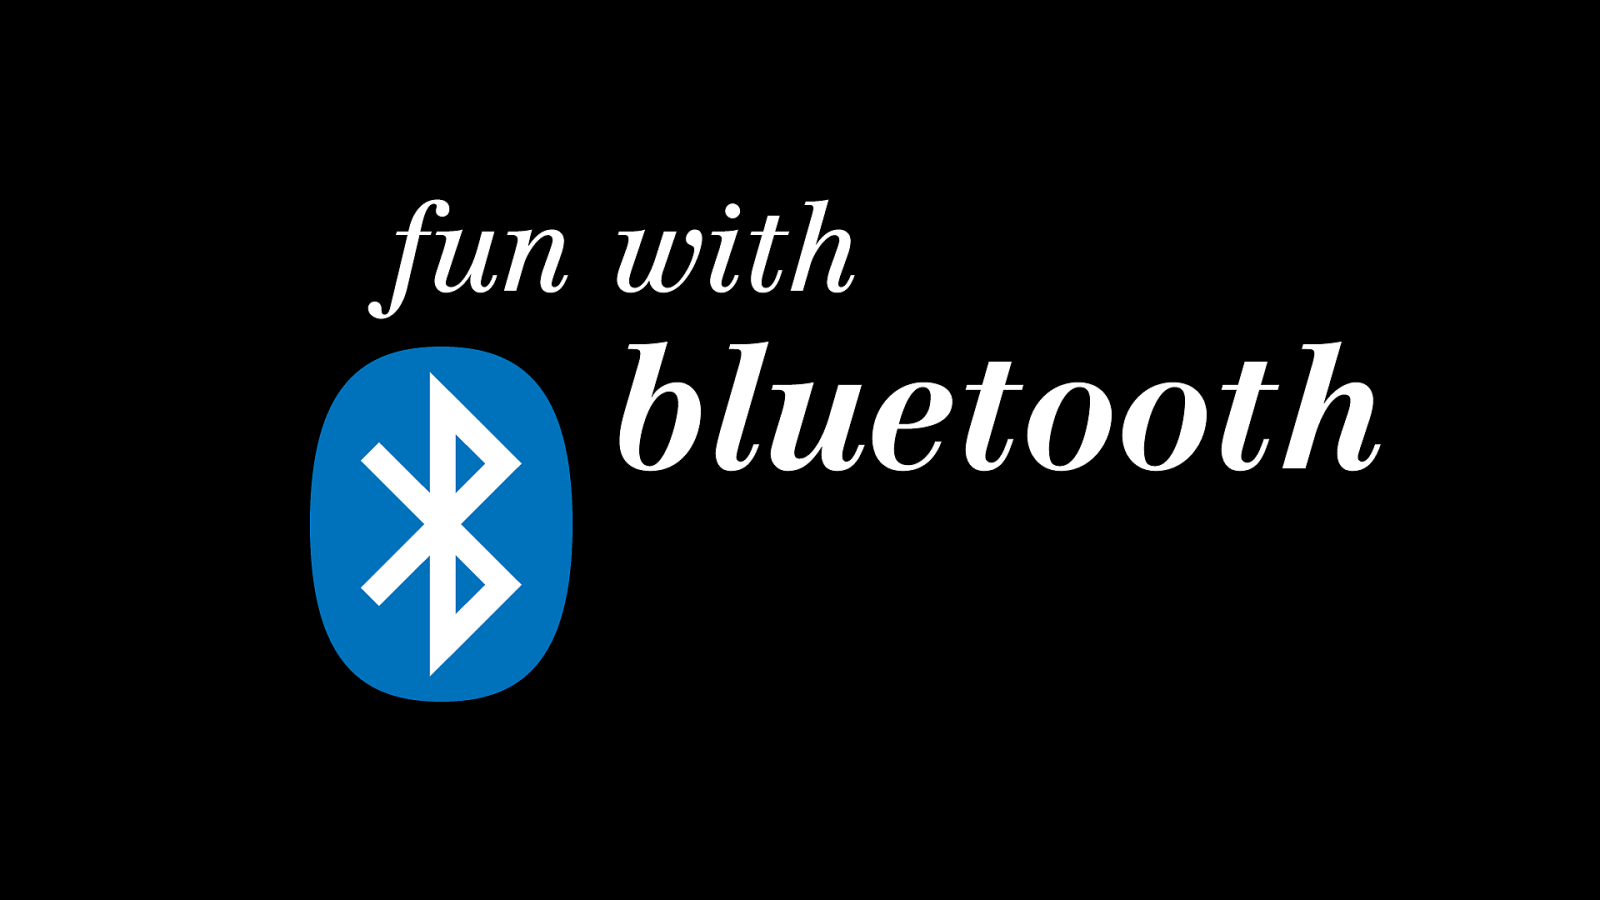 Fun with Bluetooth